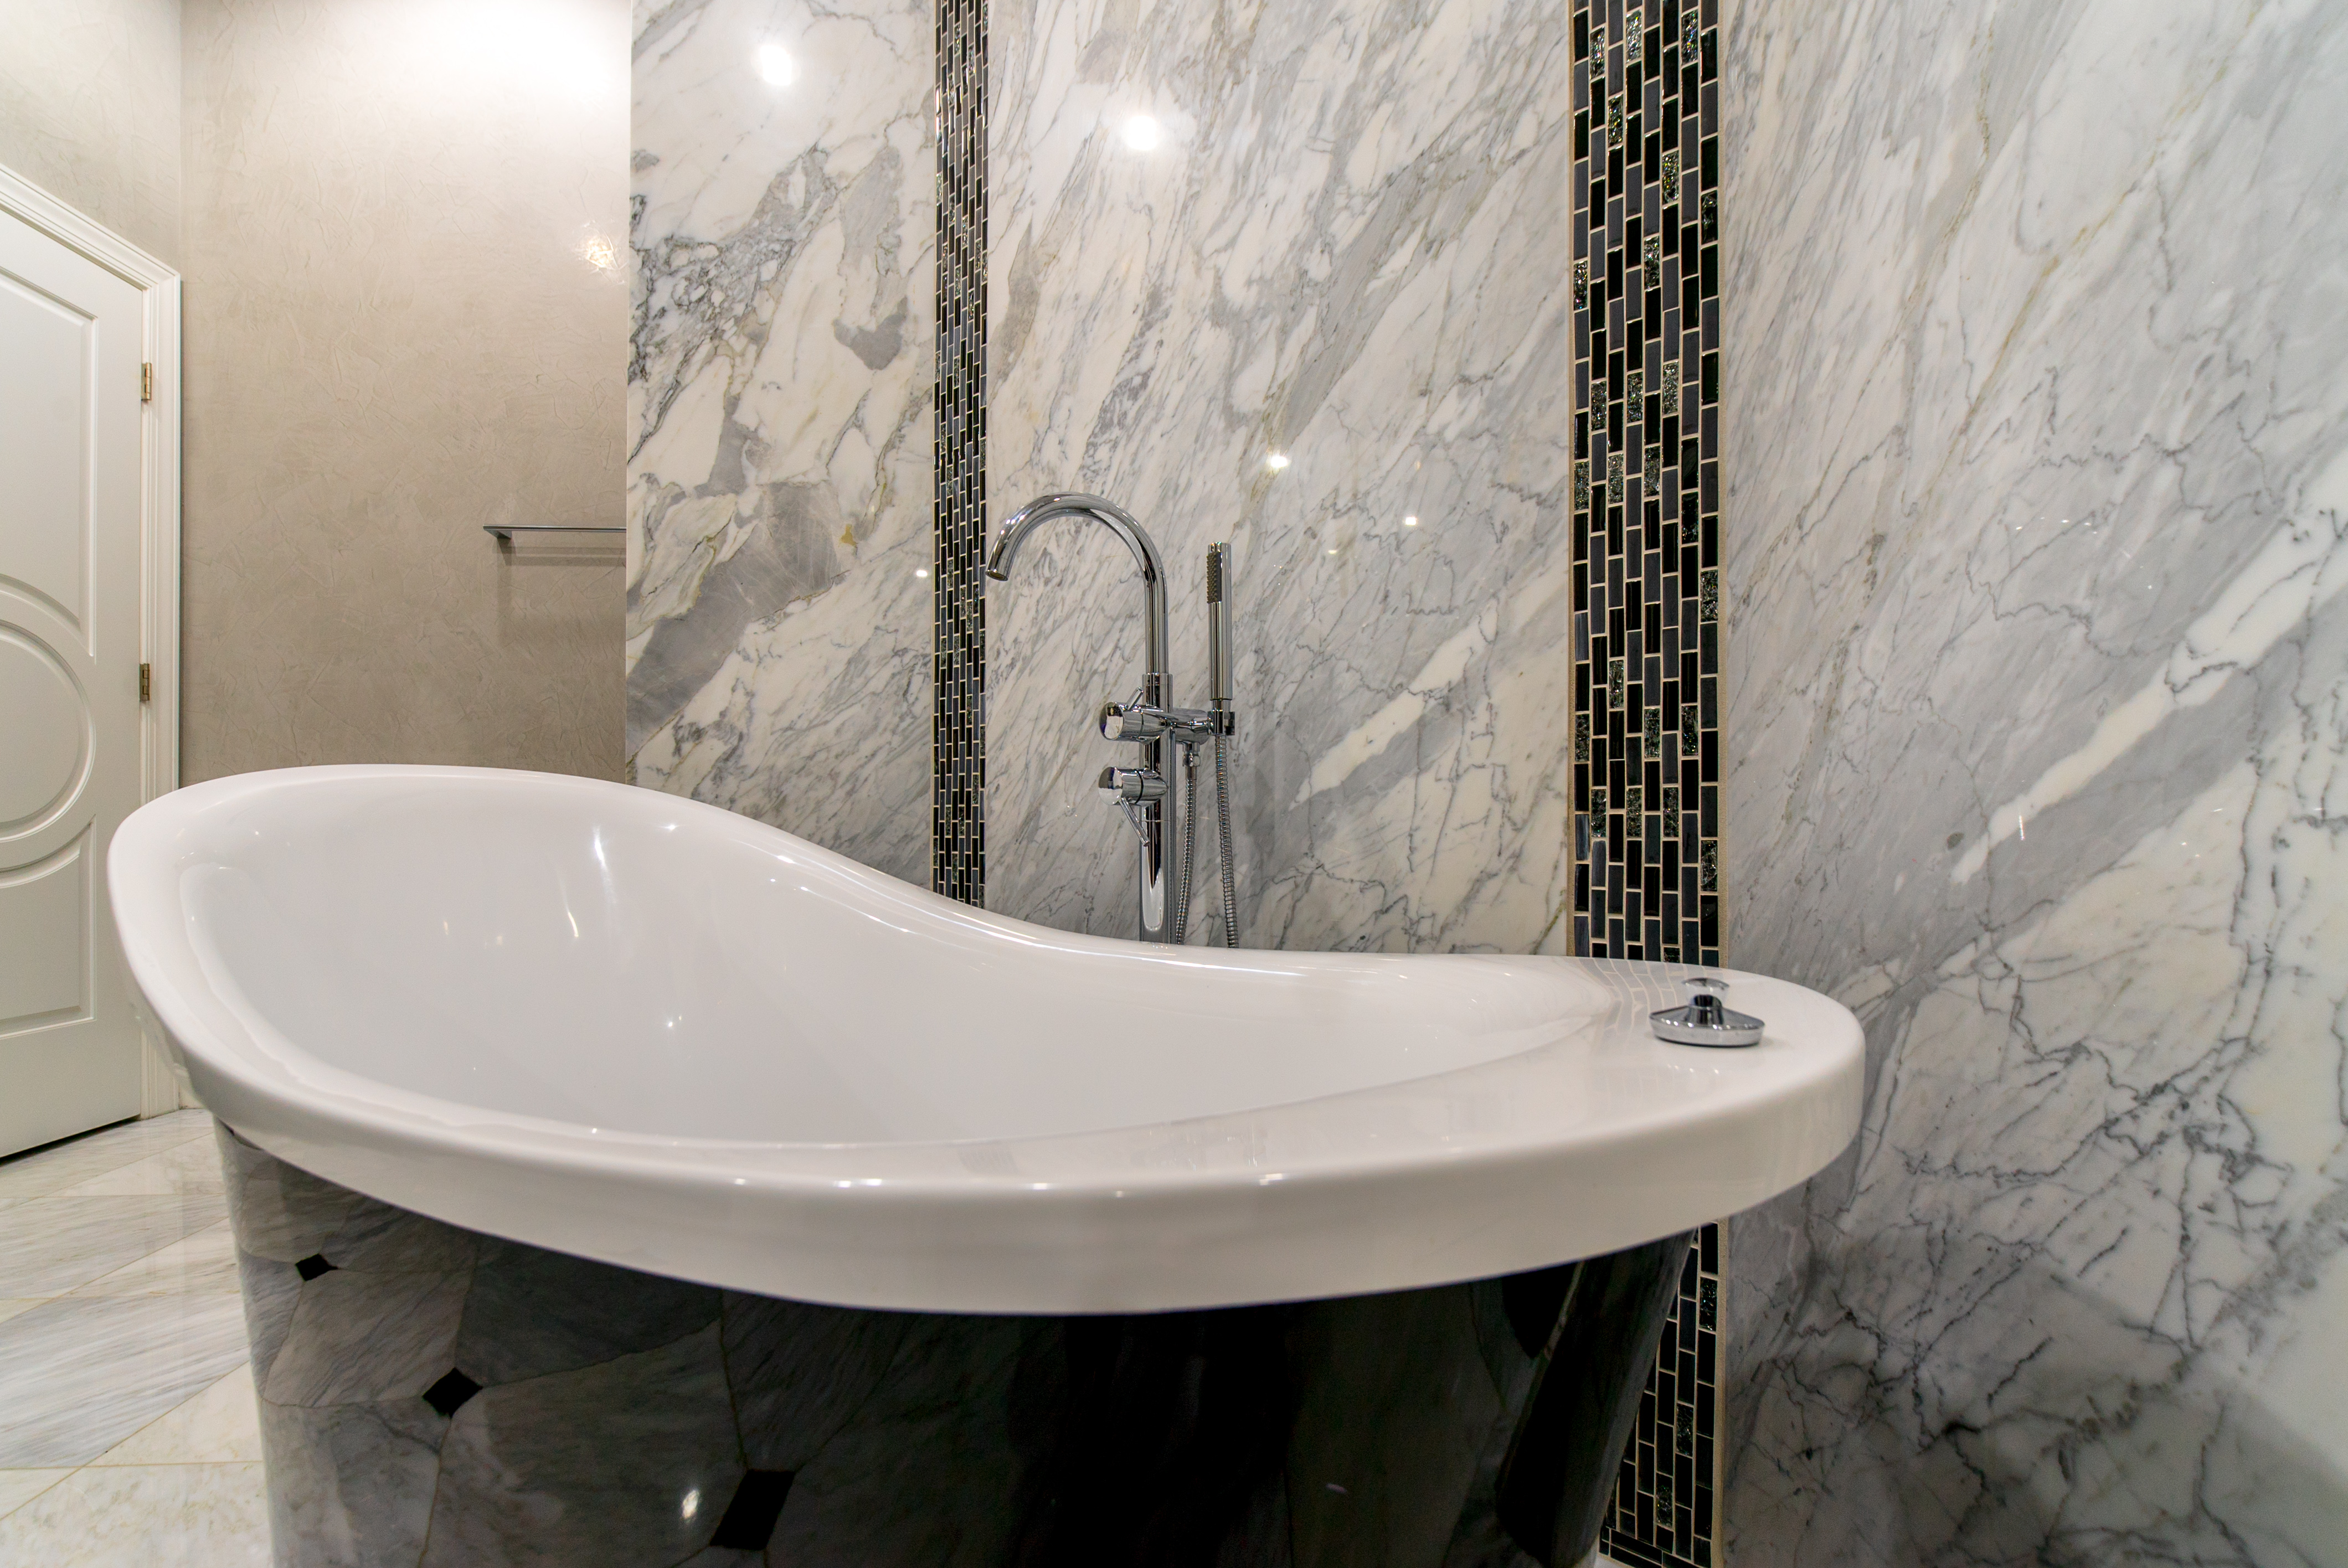 tile custom flooring backsplashes showers find tile options in a vast array of styles colors and finishes to accentuate the look of your shower or bath